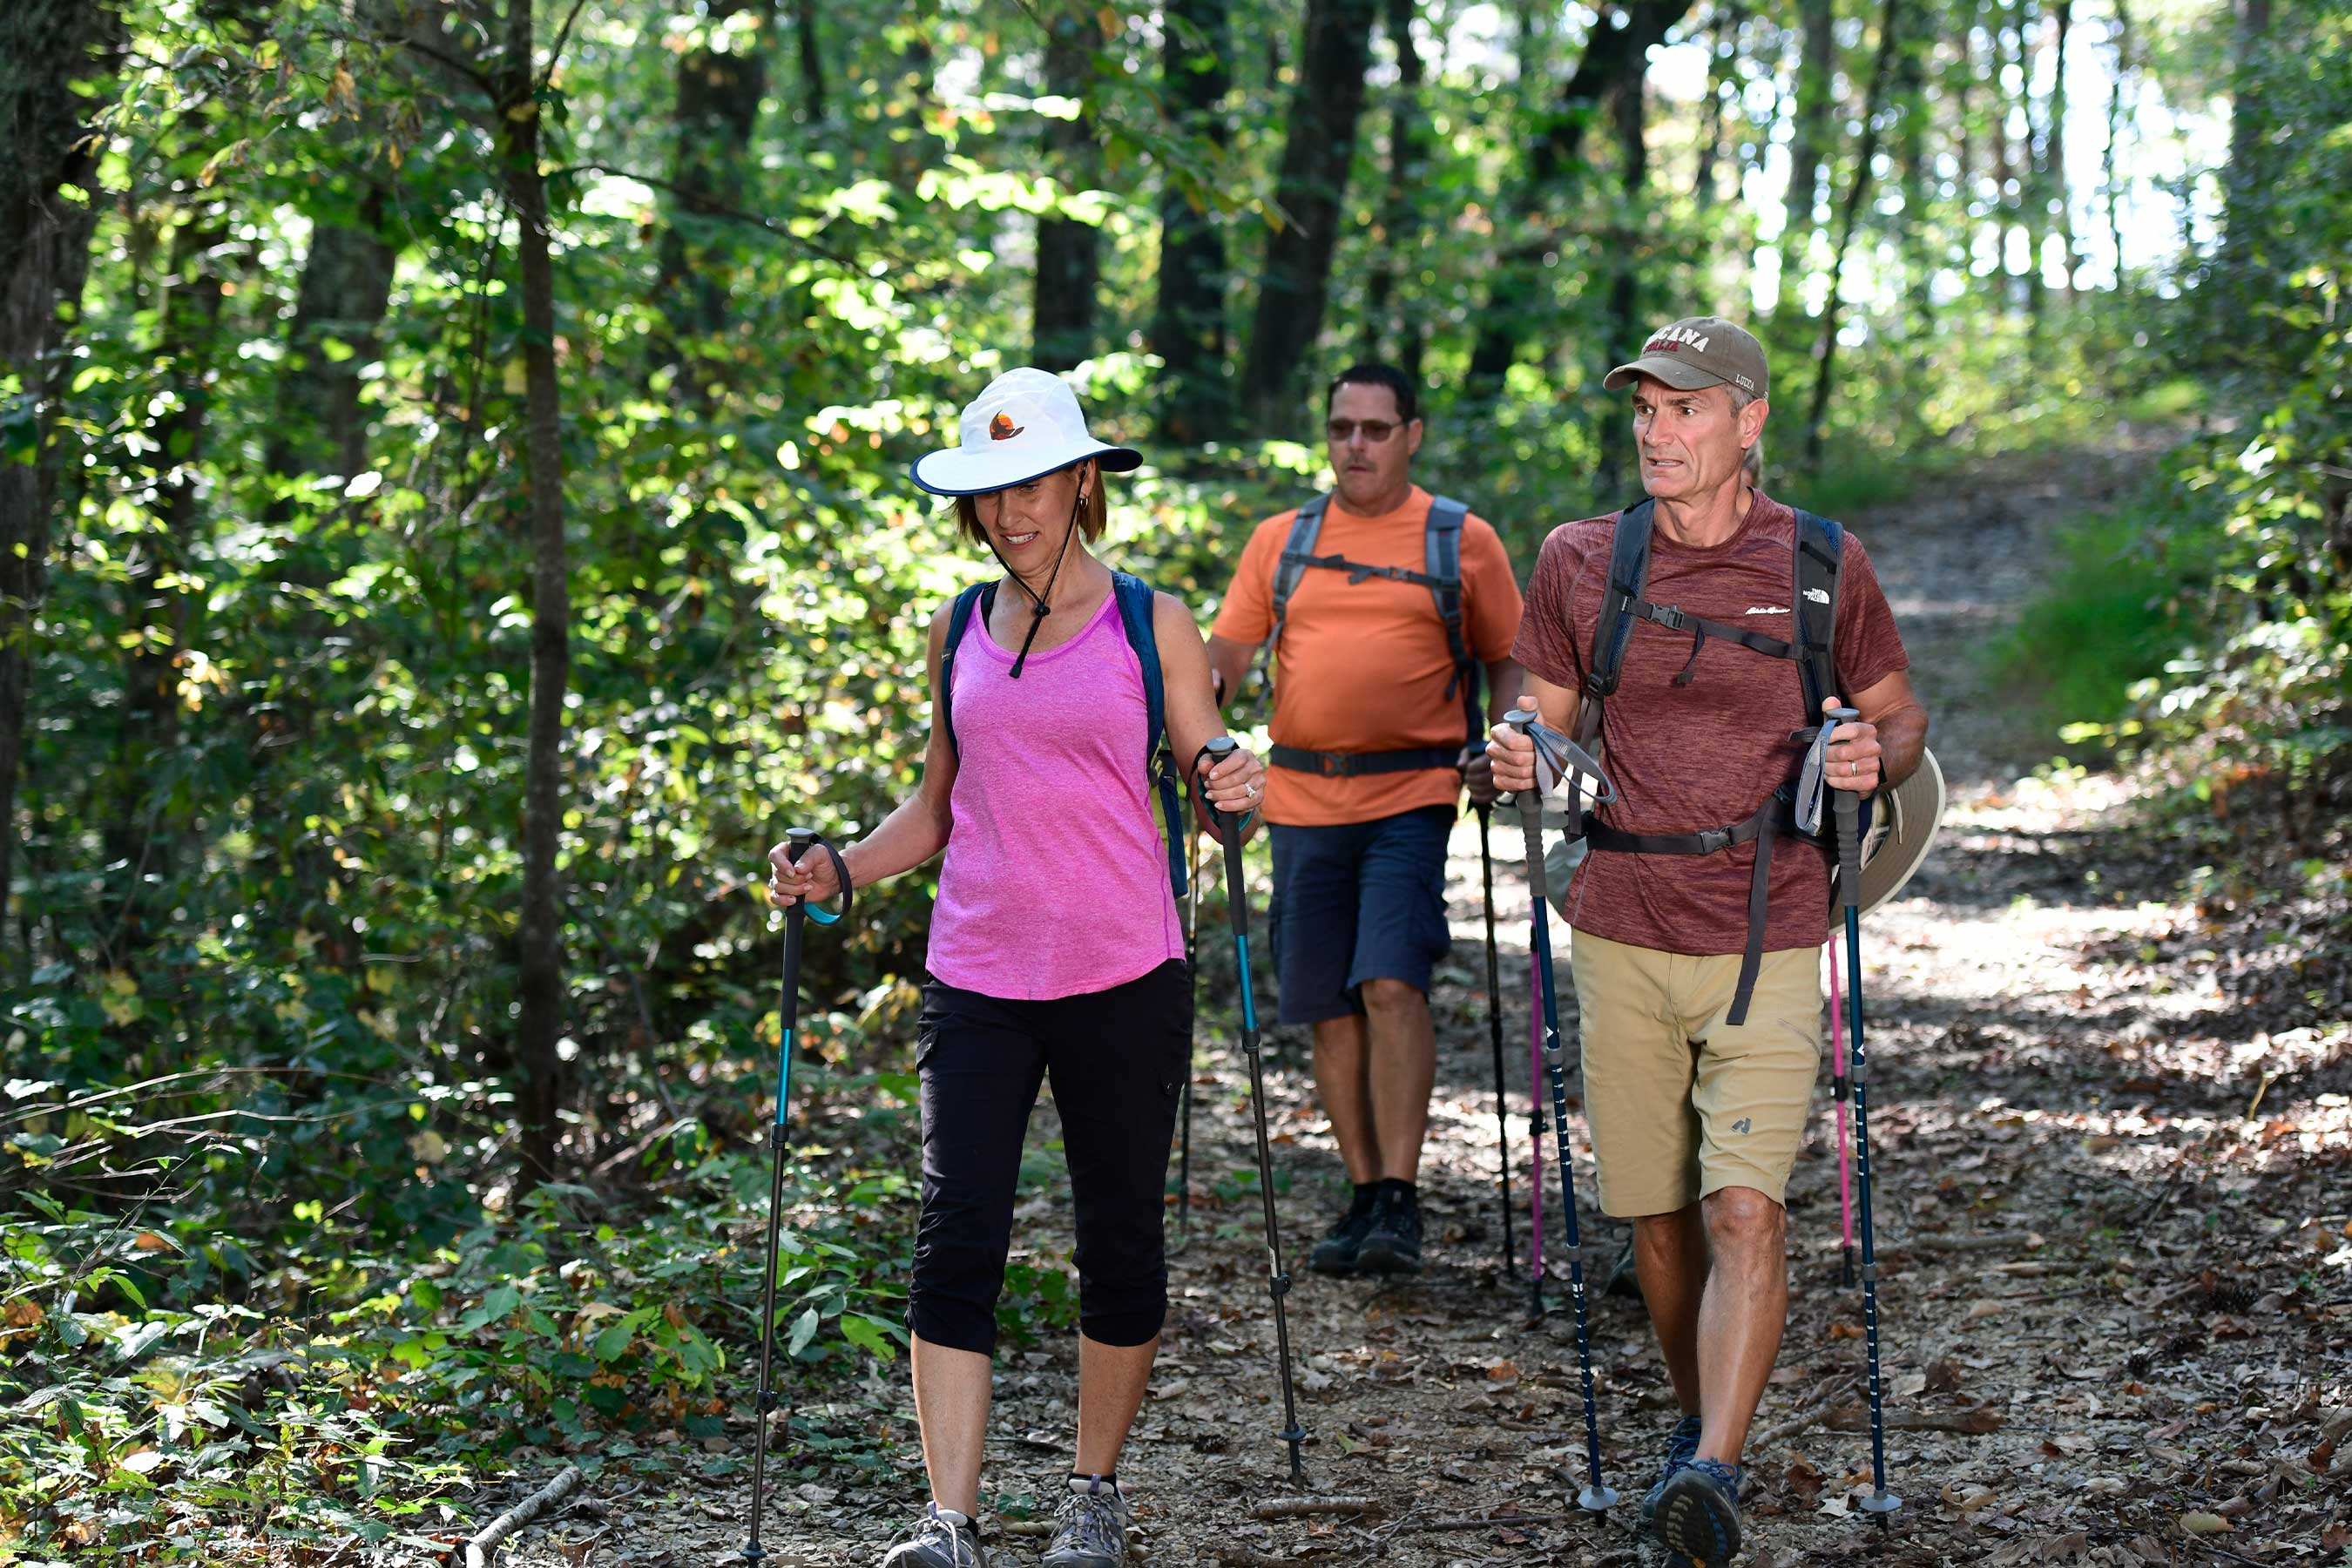 Tellico Village boasts 20-plus miles of hiking trails, keeping residents in healthy motion.